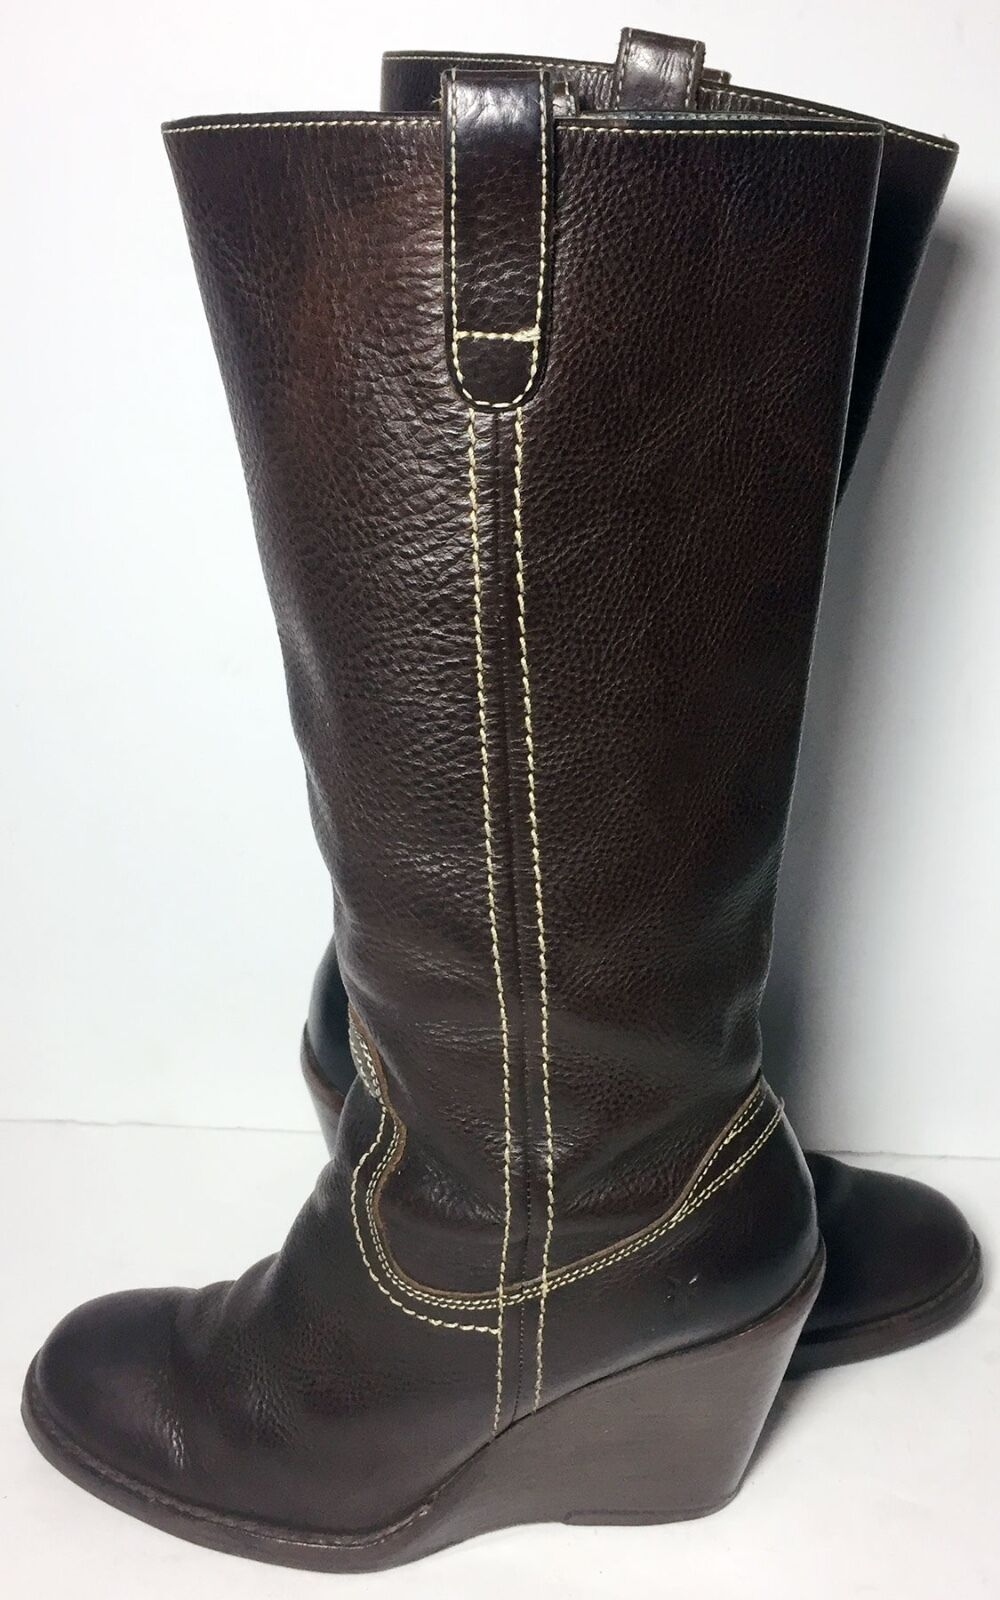 Frye 77337 Campus Caroline Brown Leather Biker Motorcycle Boots Boots Boots Women's Size 8 3df727